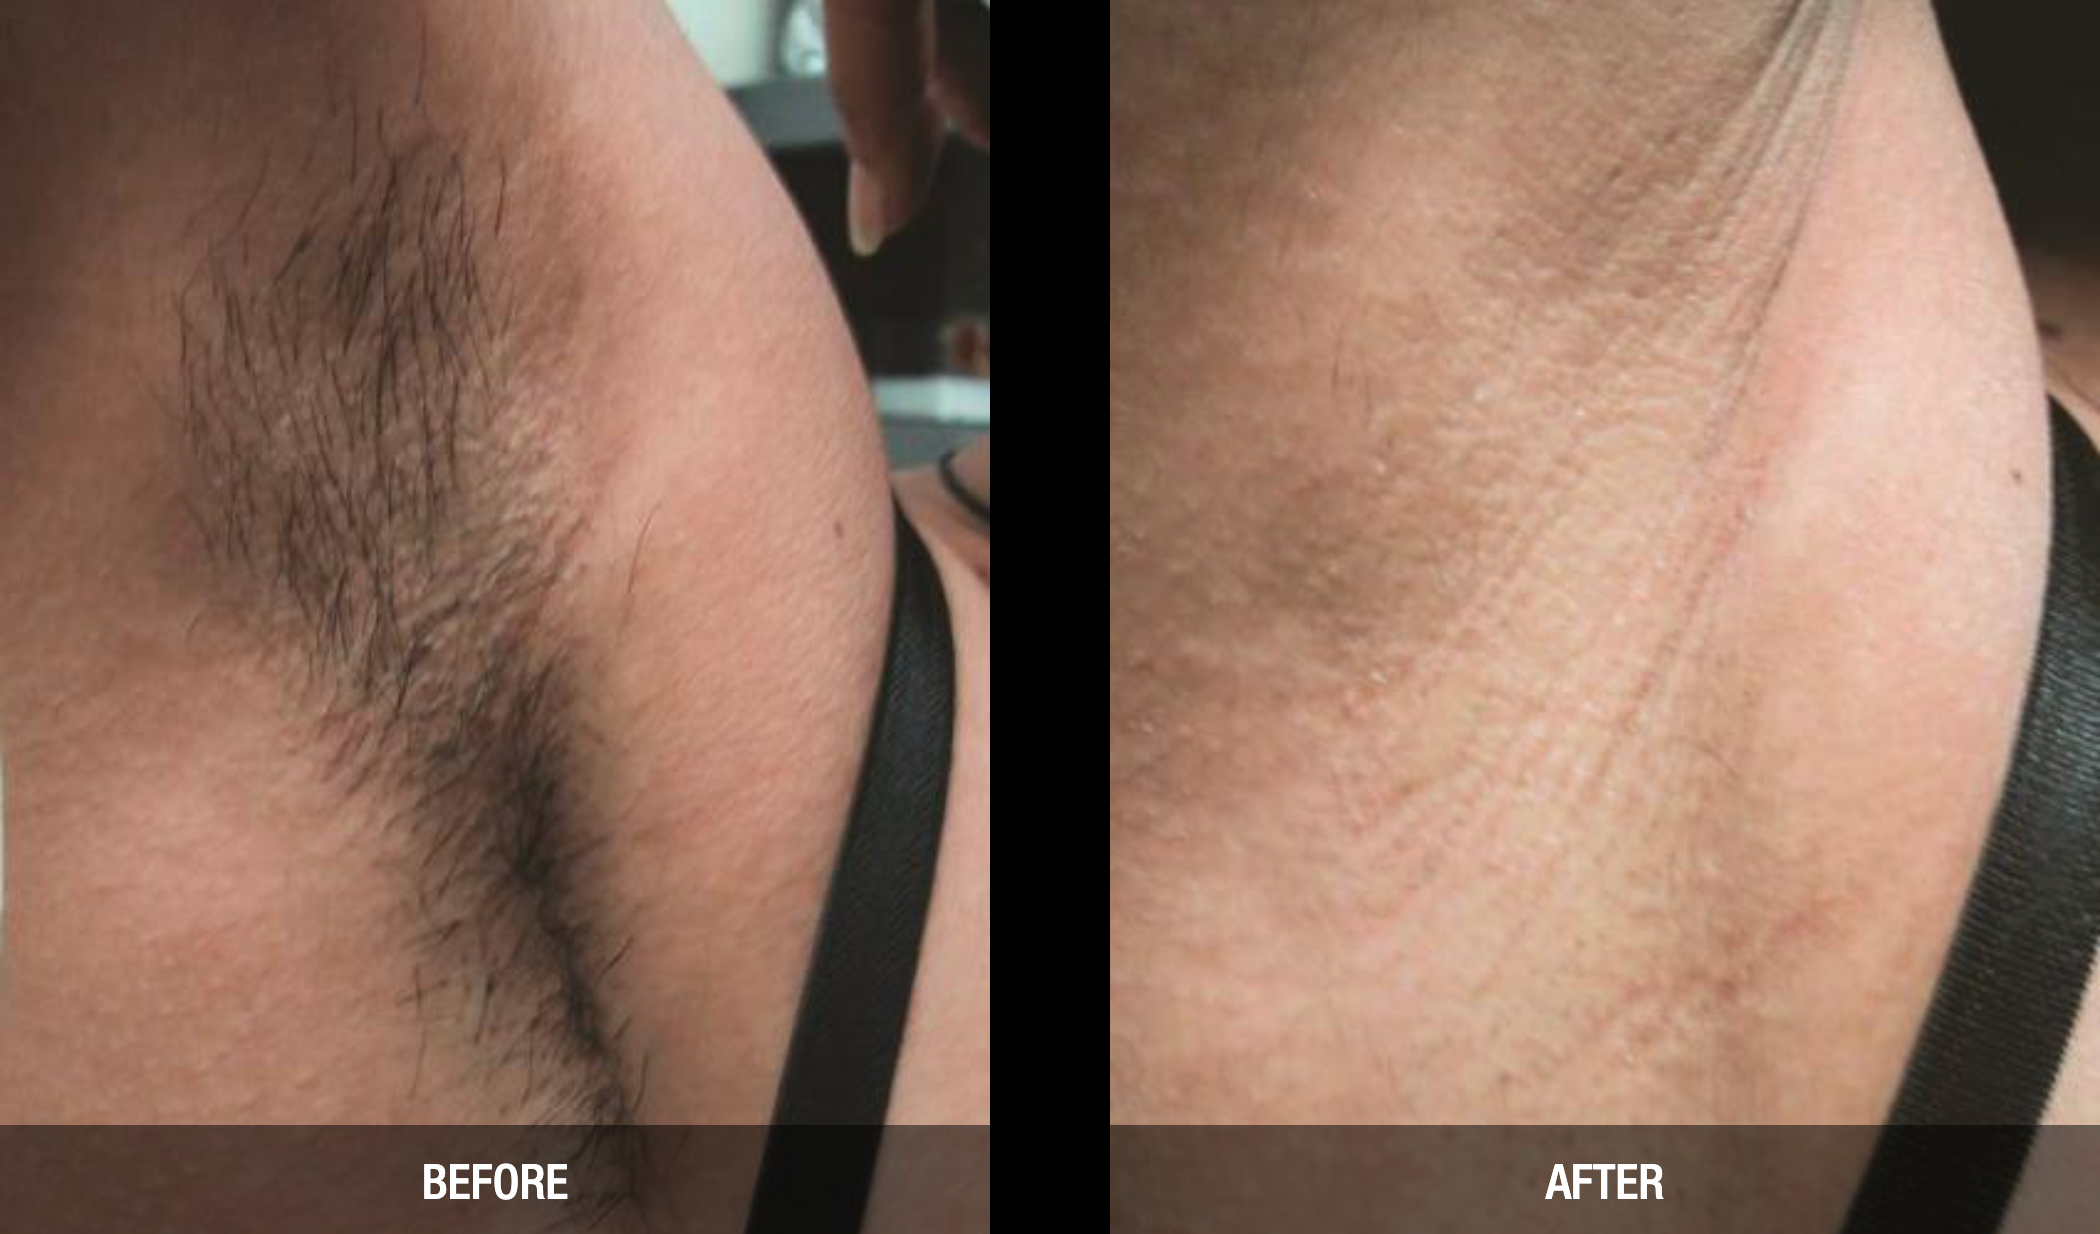 Laser hair removal with the GentleMax Pro.